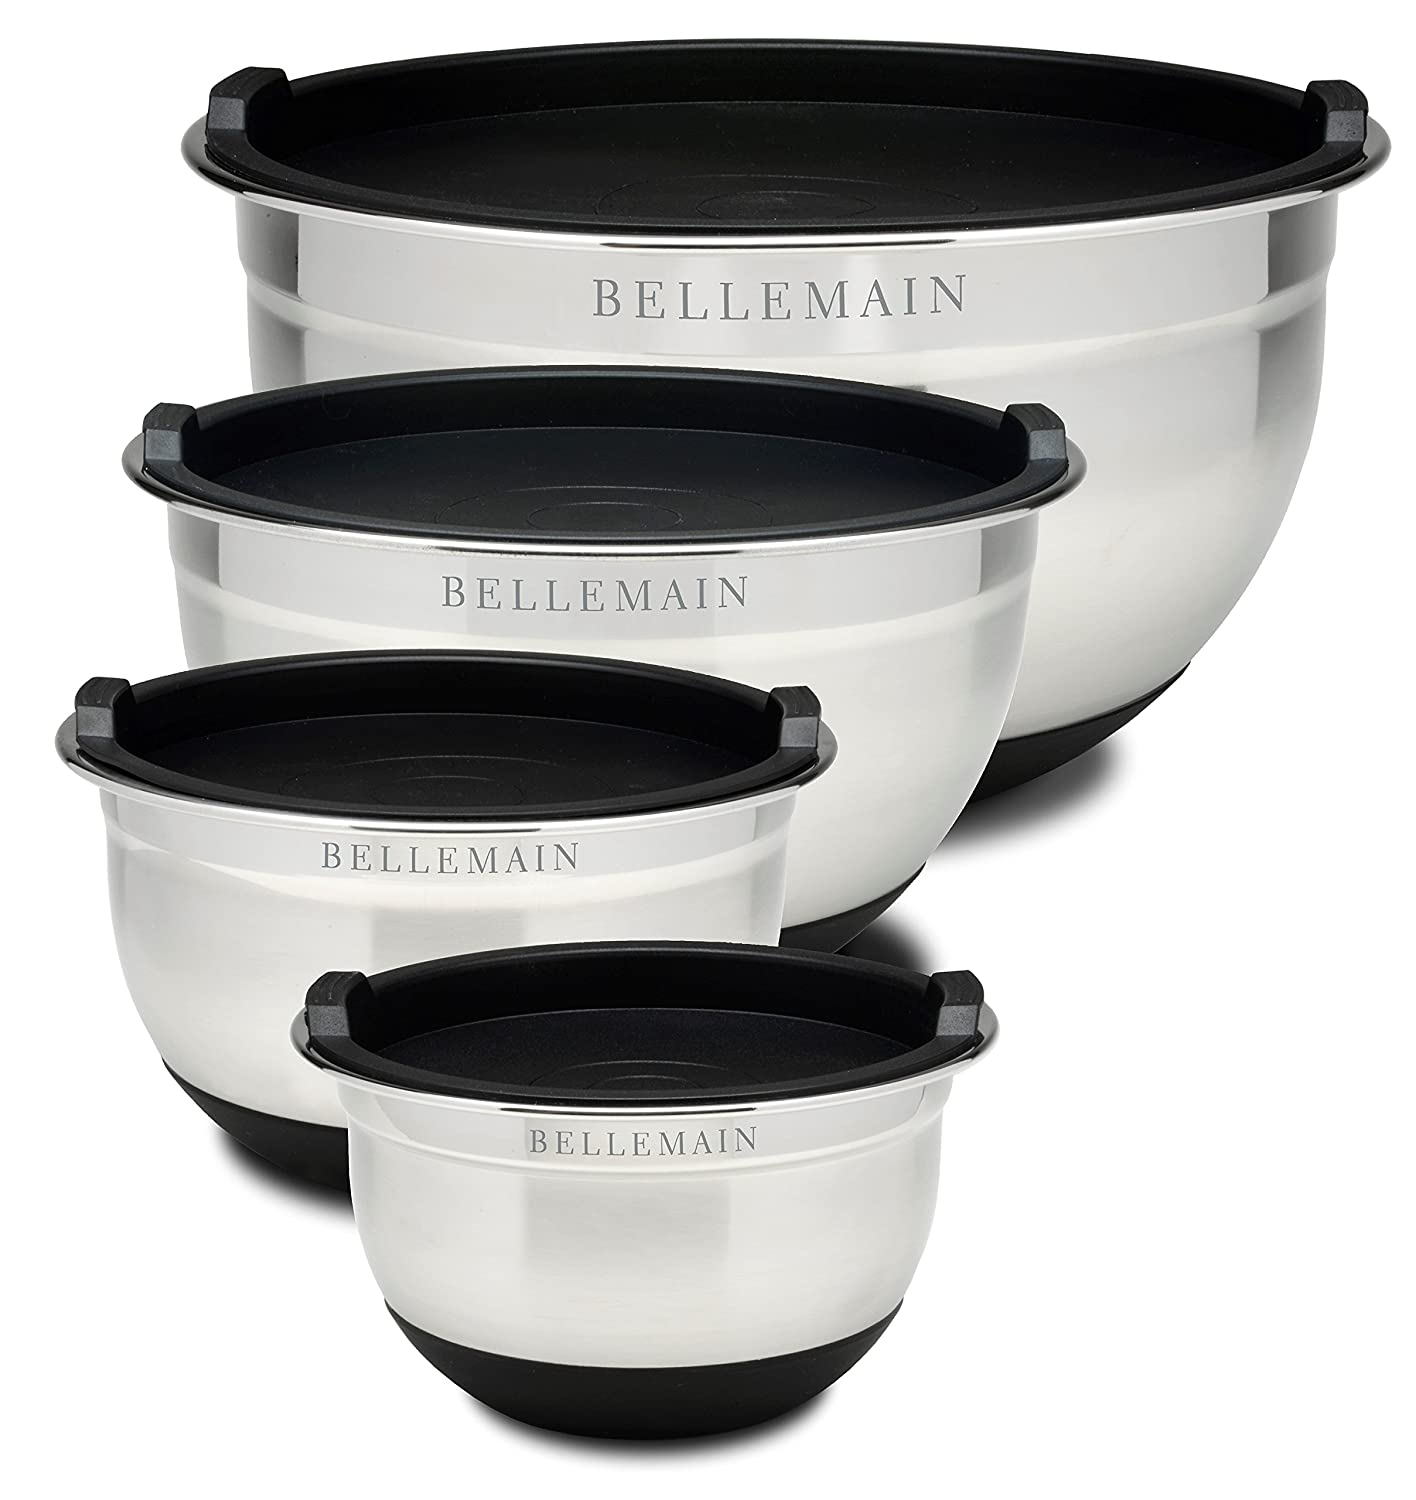 Top Rated Bellemain Stainless Steel Non-Slip Mixing Bowls with Lids,